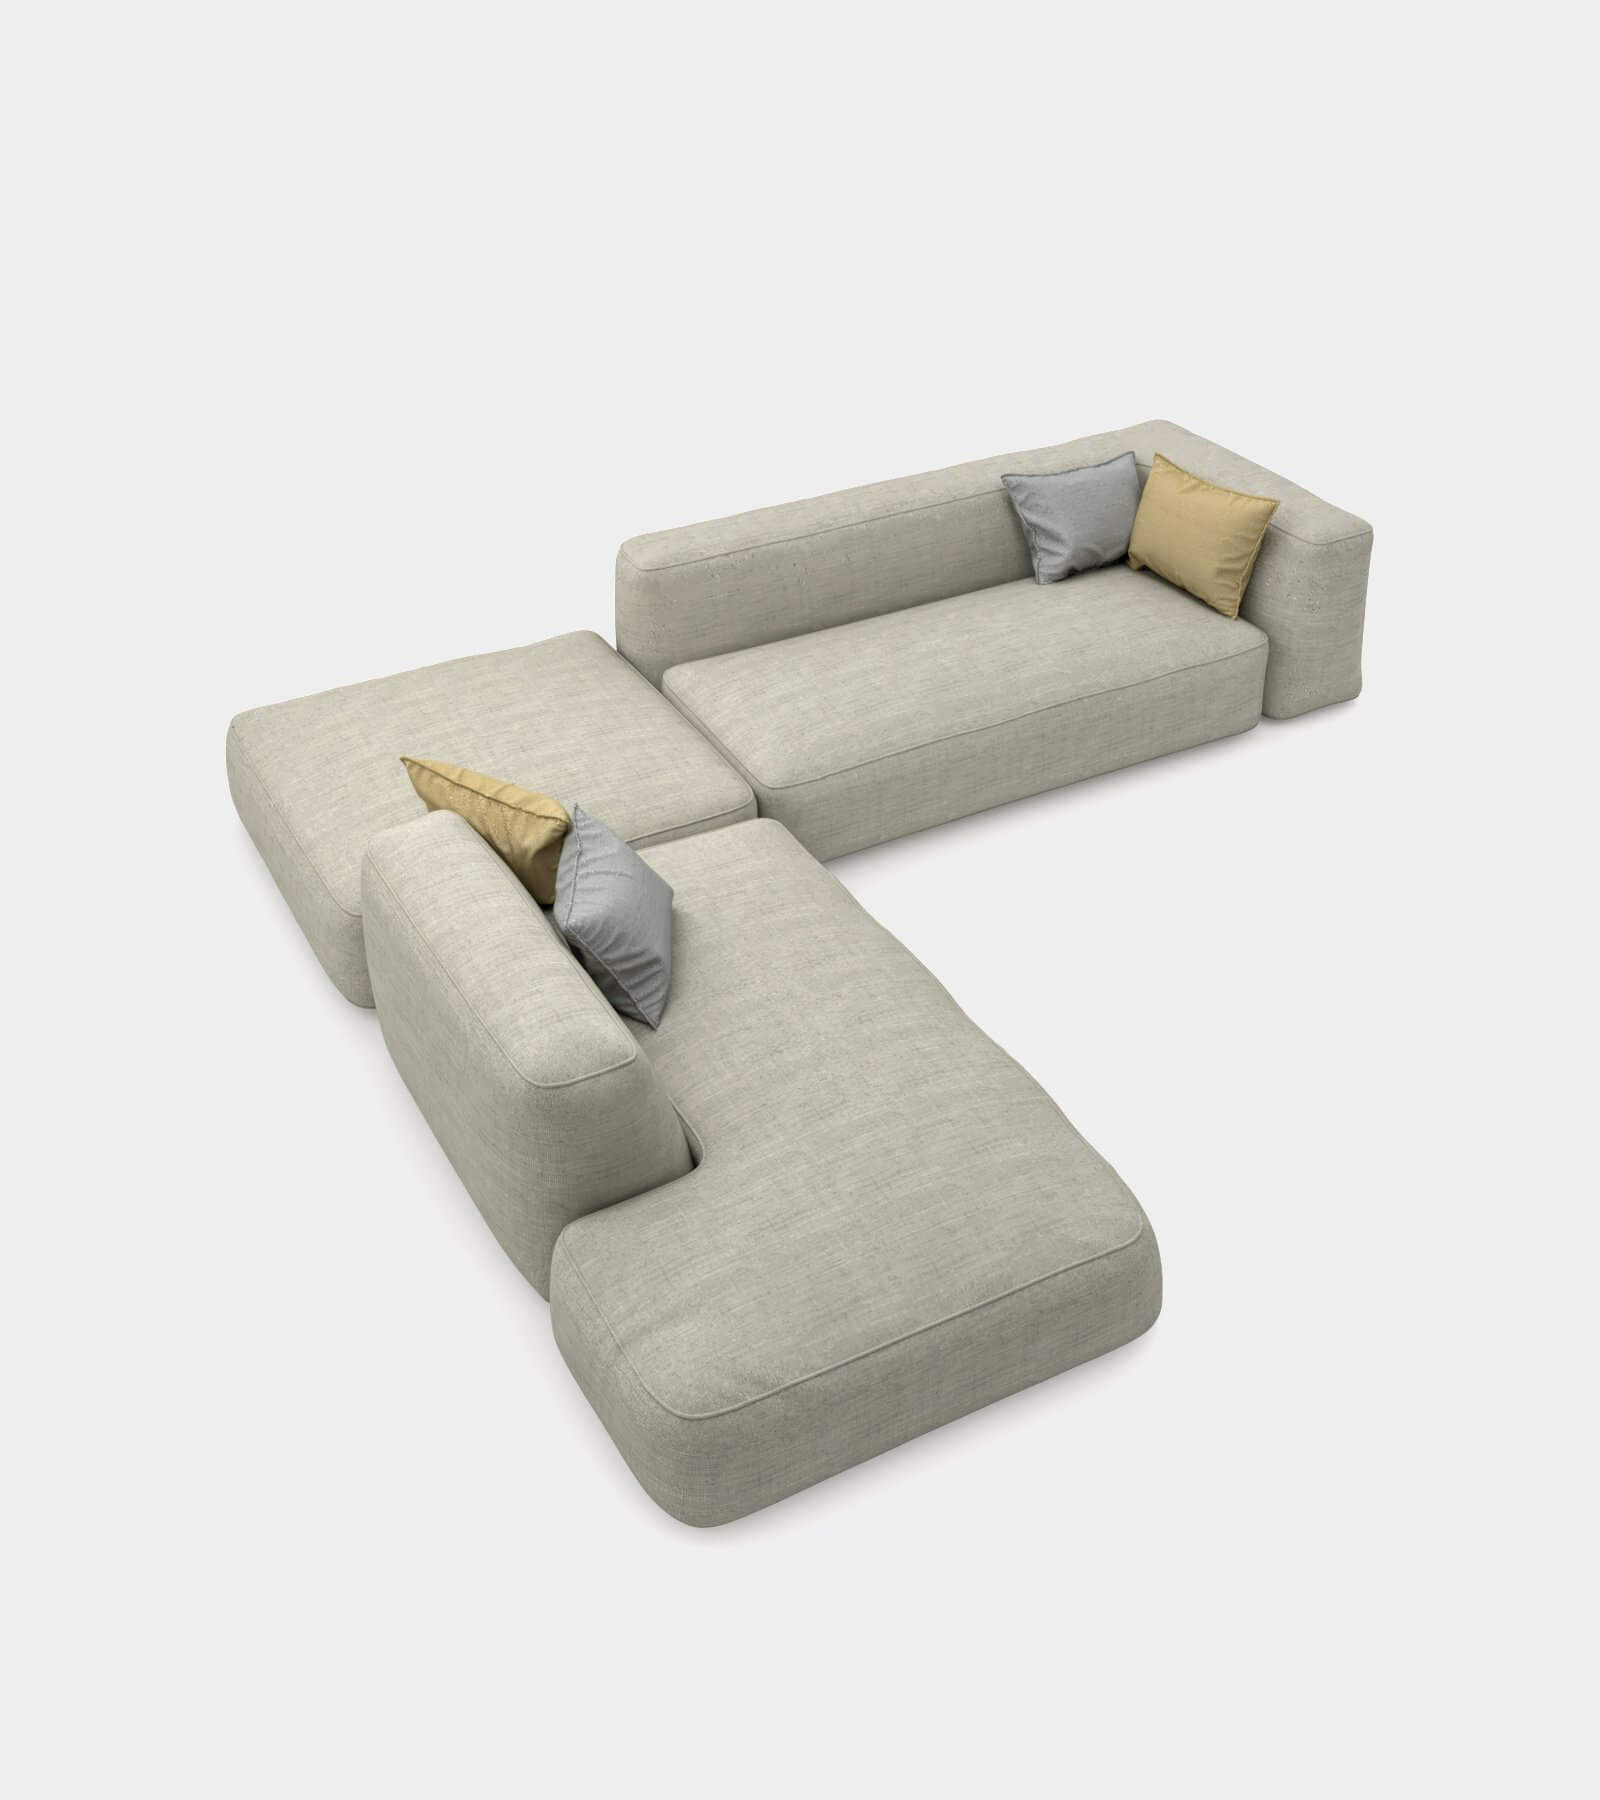 Cozy couch with round edges 2 3D Model